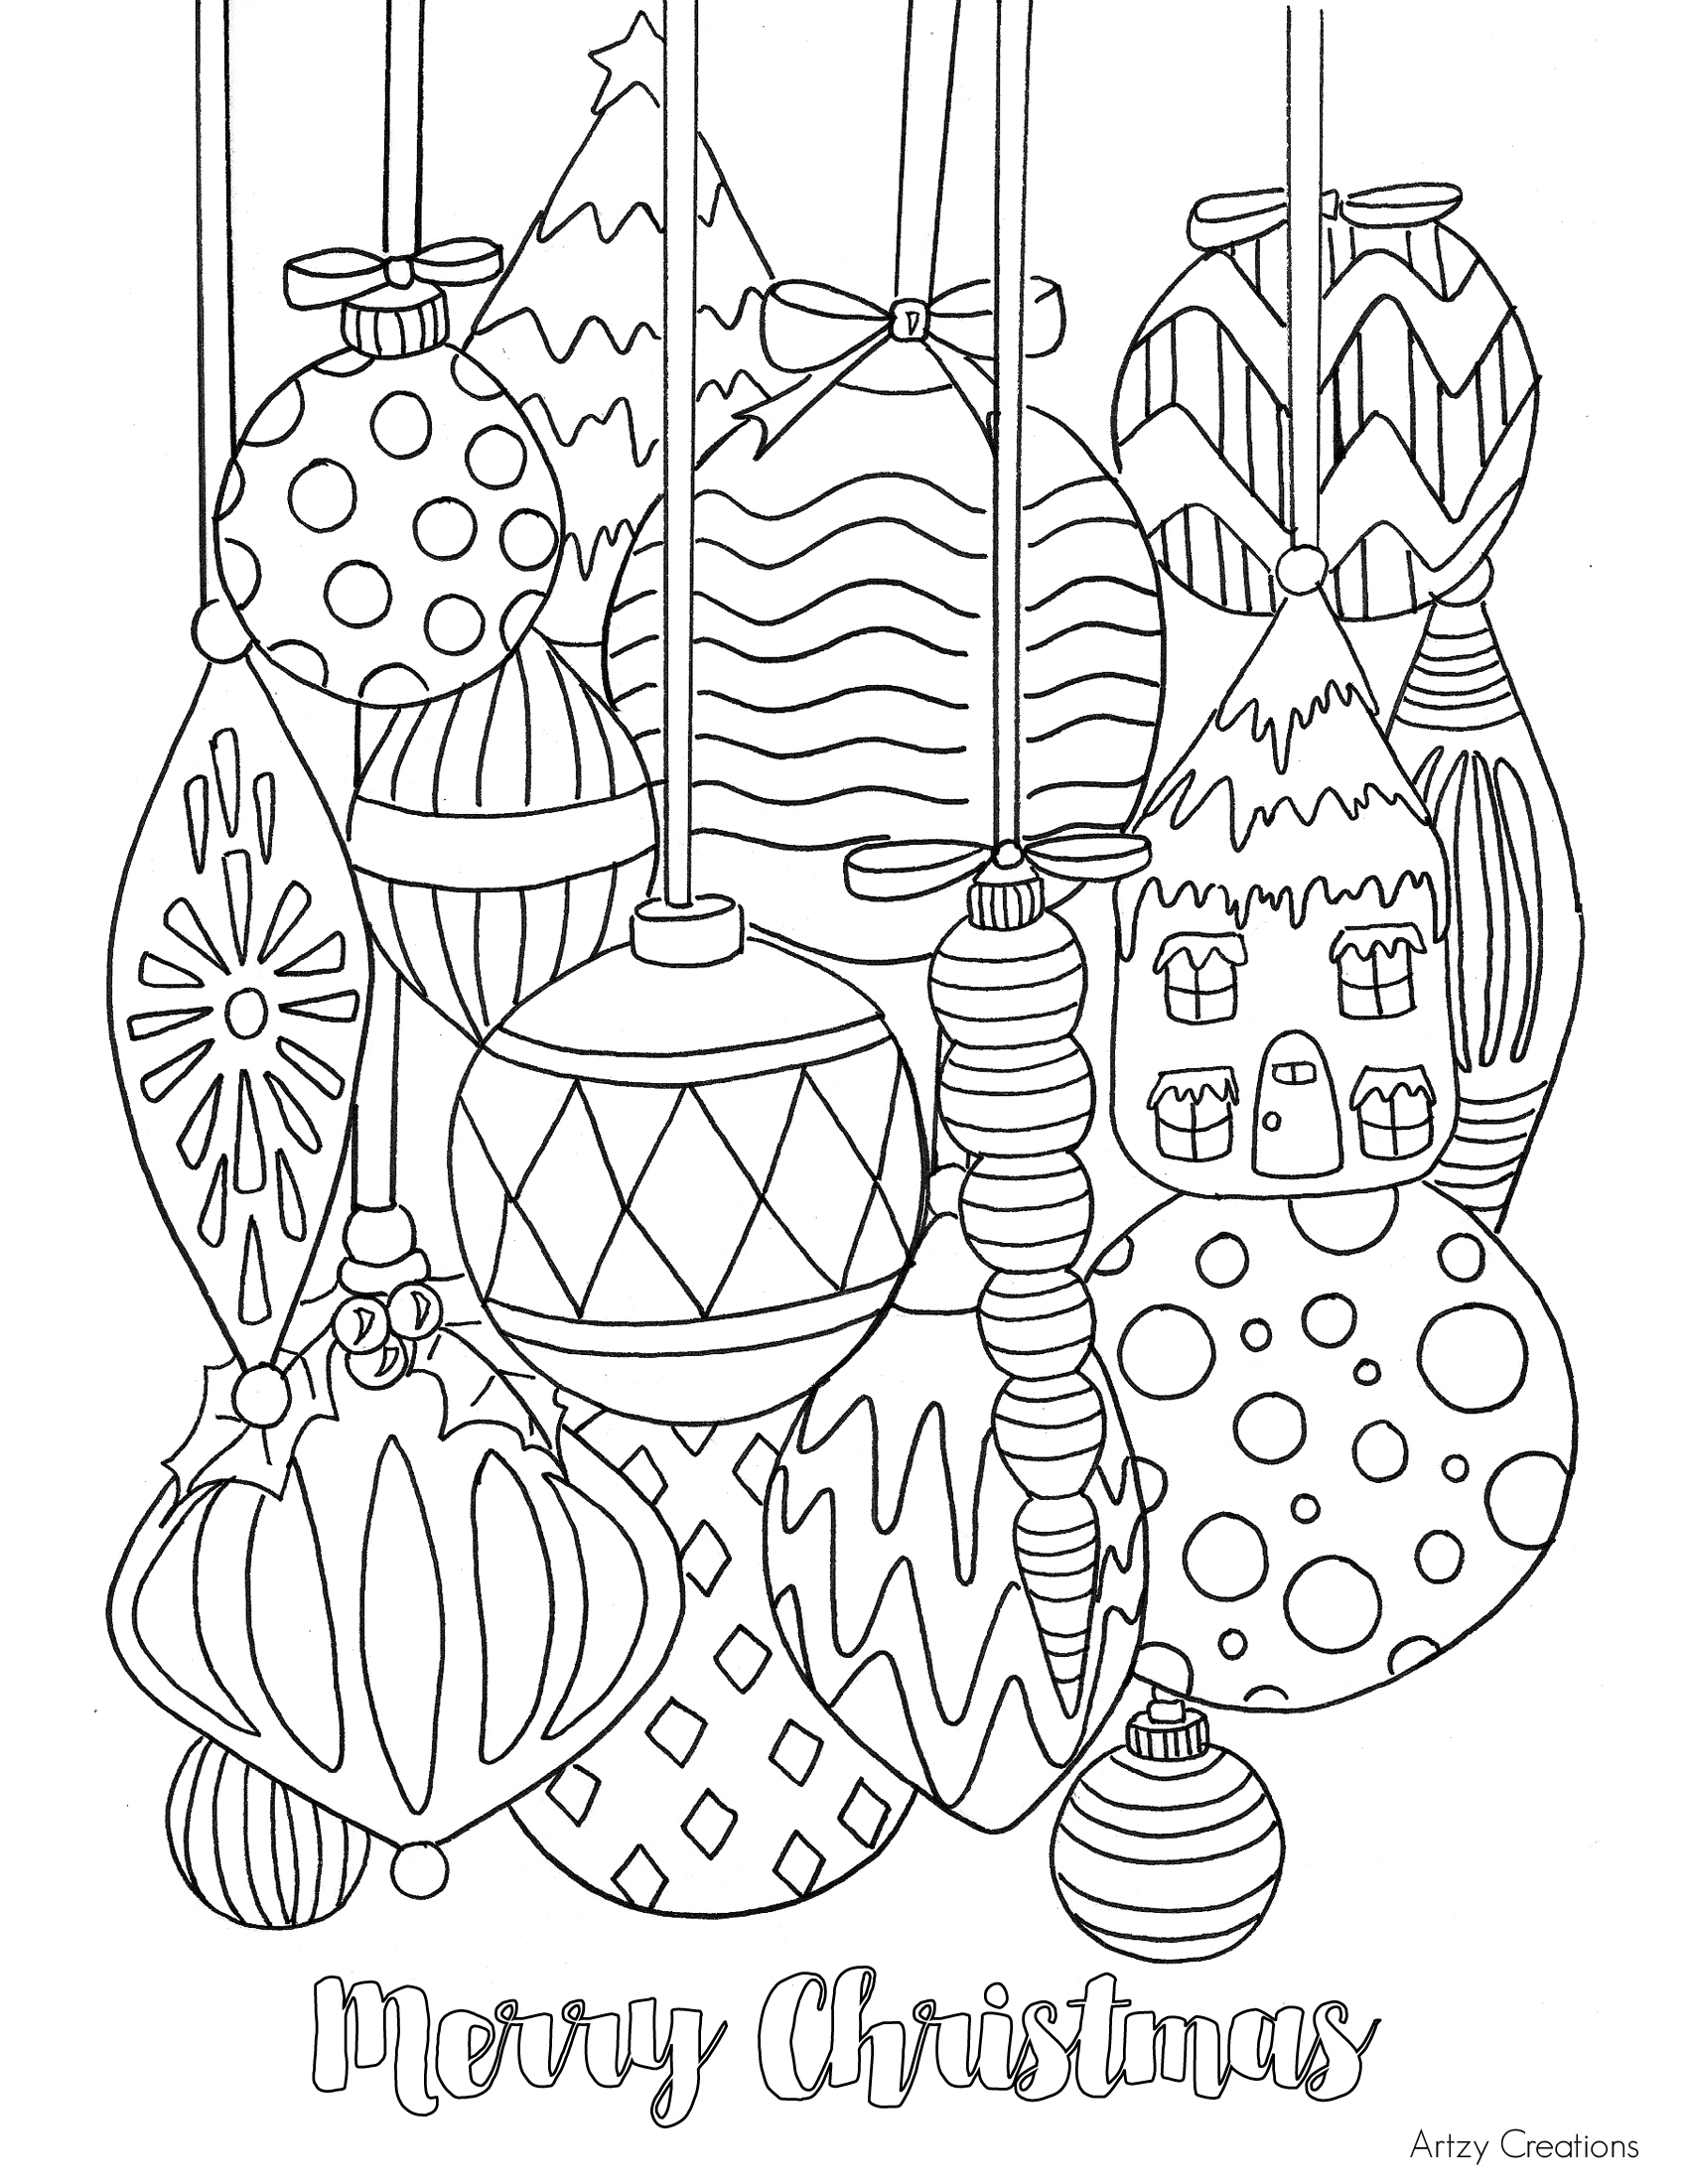 Christmas Coloring Pages Ornaments With Free Ornament Page TGIF This Grandma Is Fun